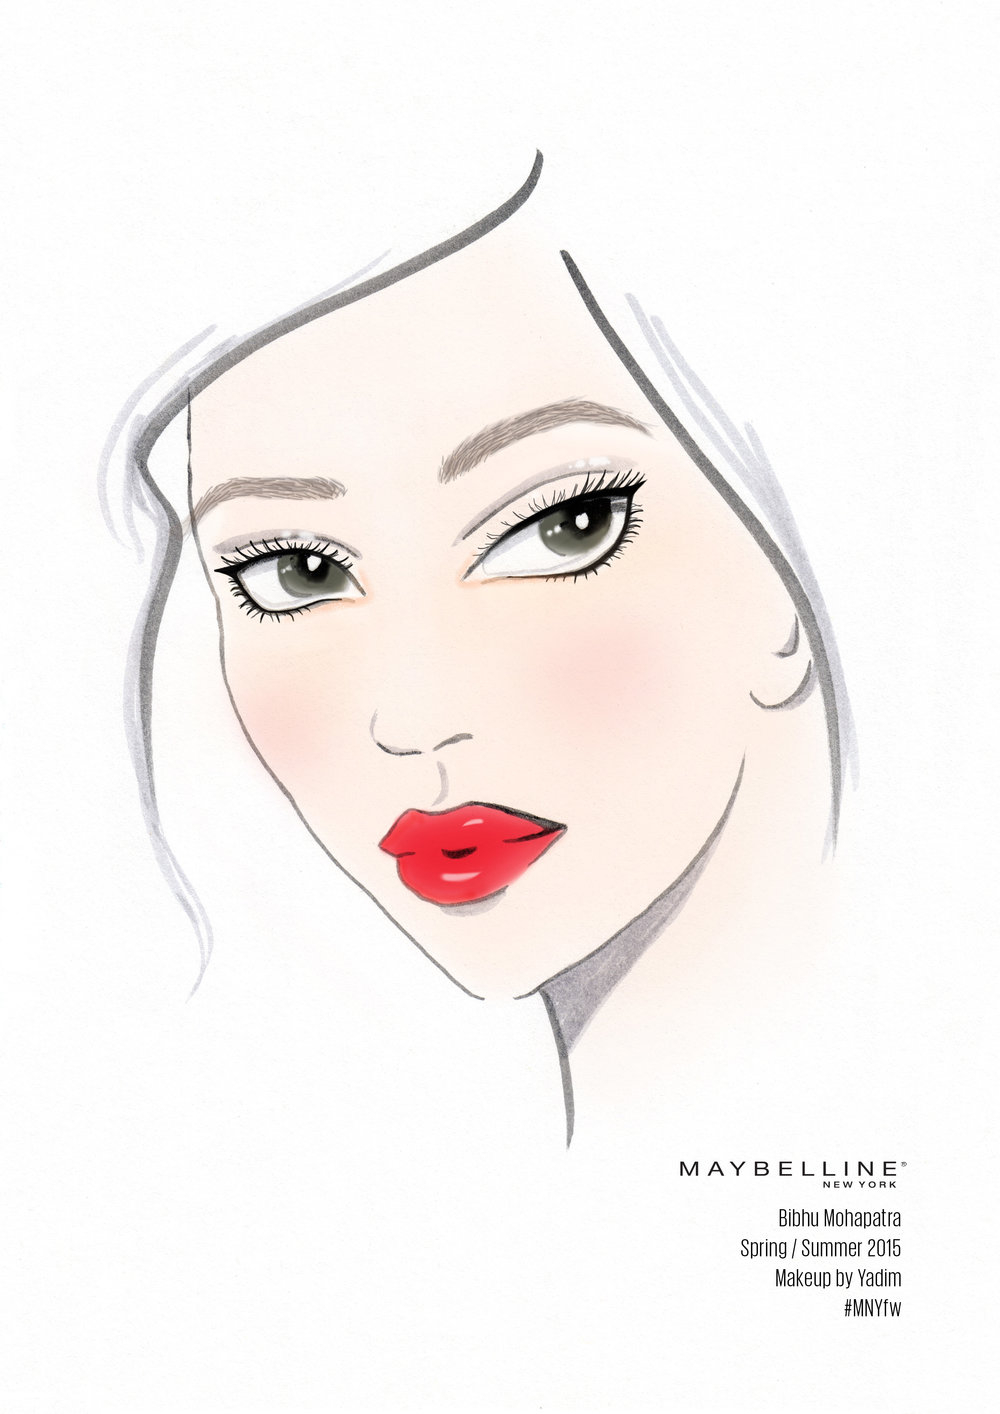 NYFW Face chart for Maybelline